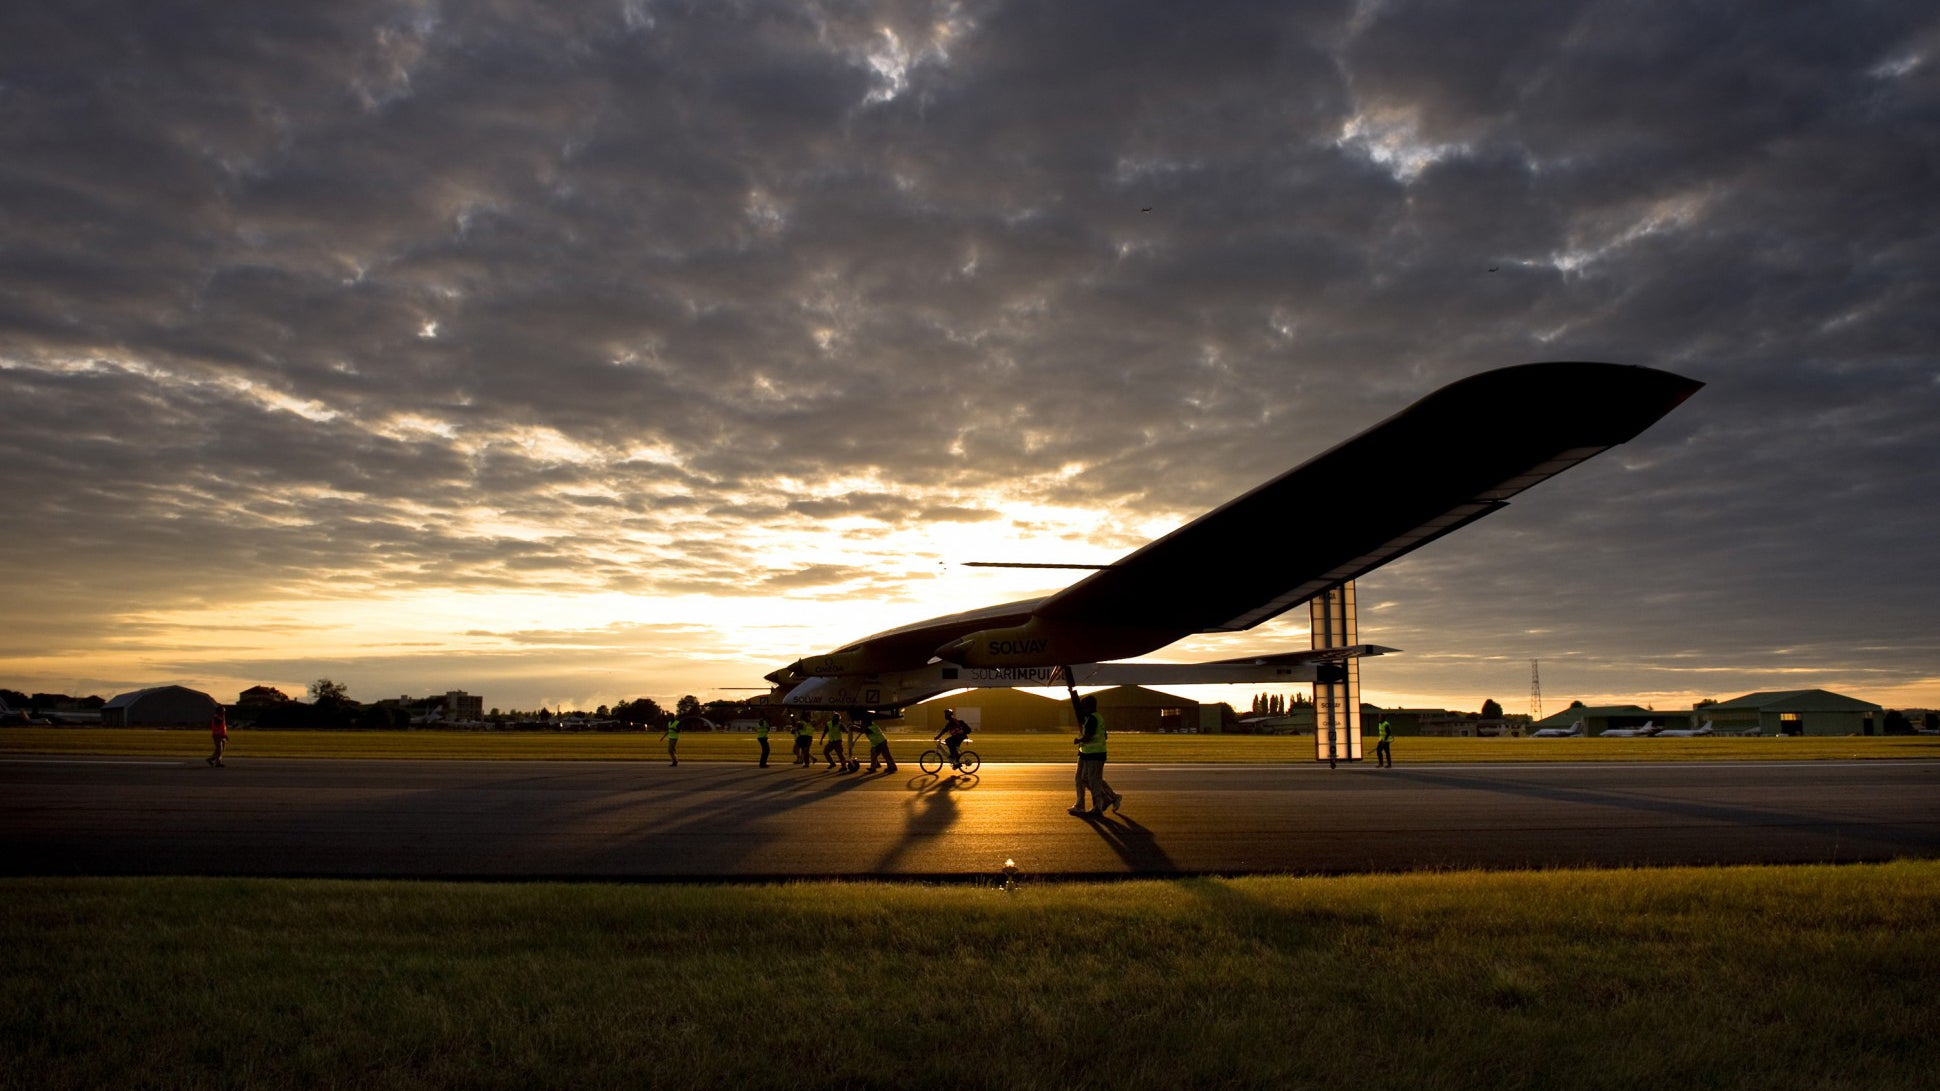 This Solar-Powered Plane Is About To Fly Around The World (Very Slowly)